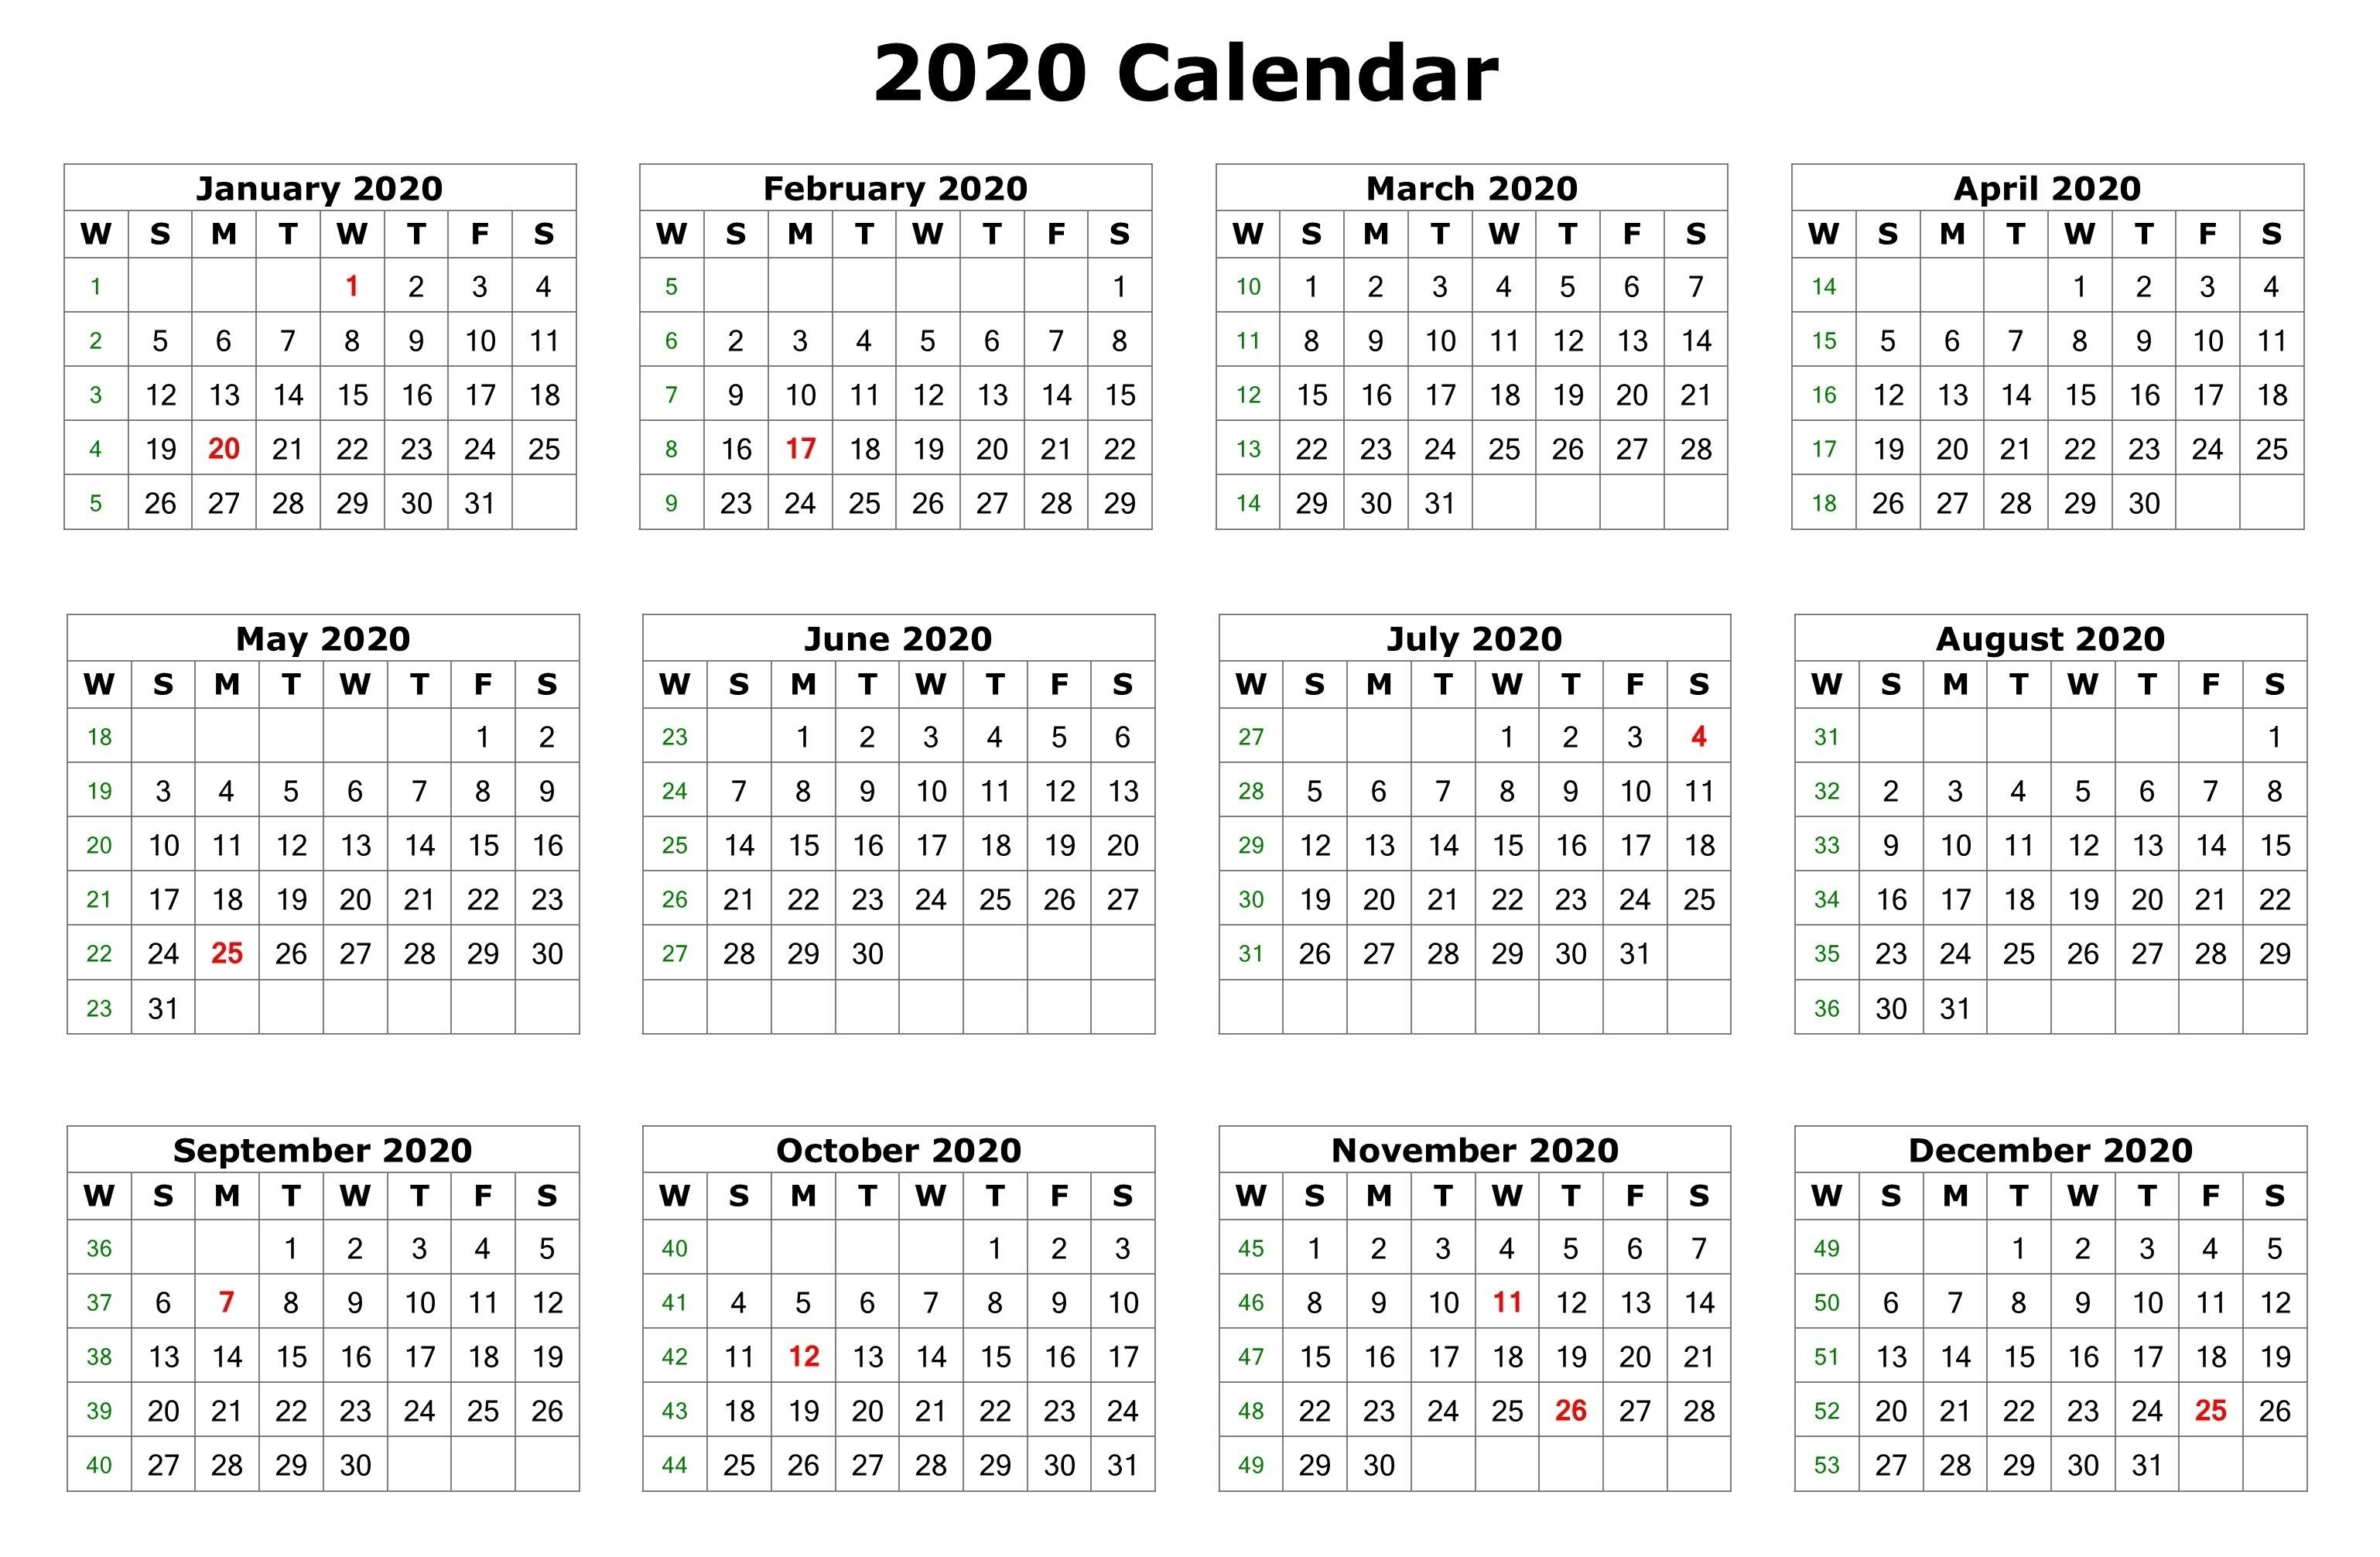 2020 12 Months Calendar Printable | 12 Month Calendar, 2020 inside 2020 12 Month Monday To Sunday Calendar Template